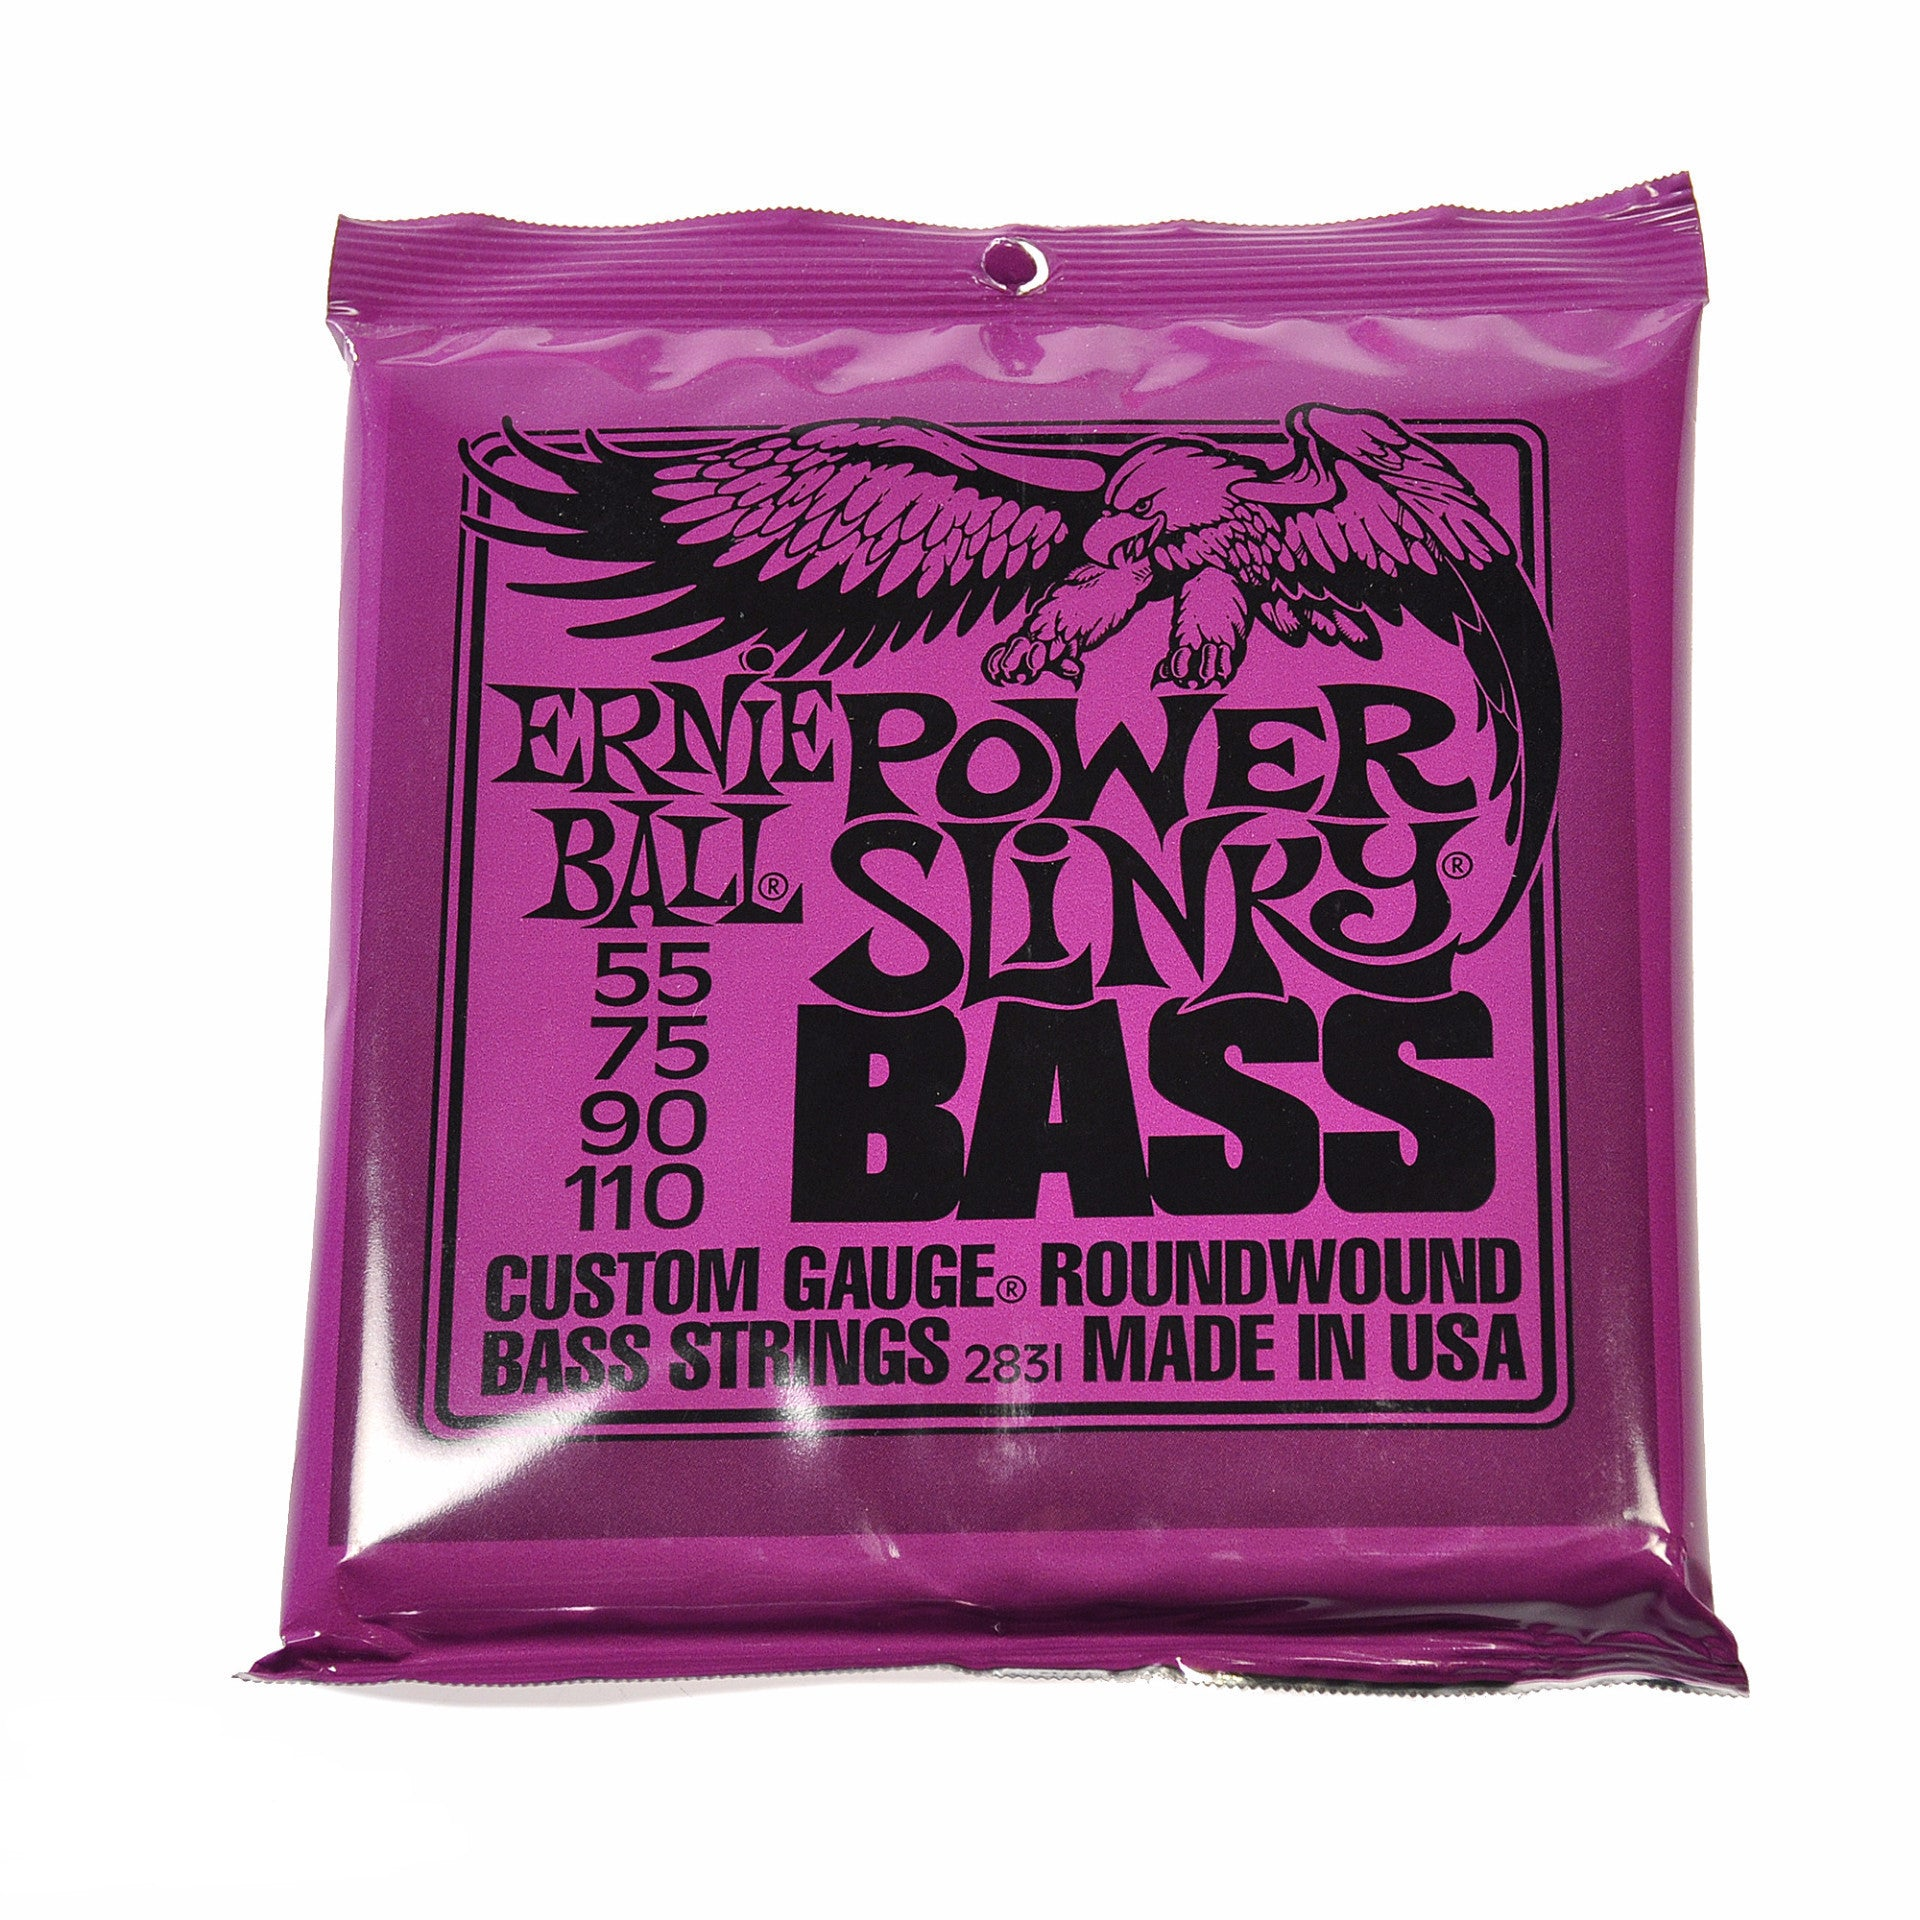 ernie ball power slinky bass strings roundwound set 55 110 chicago music exchange. Black Bedroom Furniture Sets. Home Design Ideas